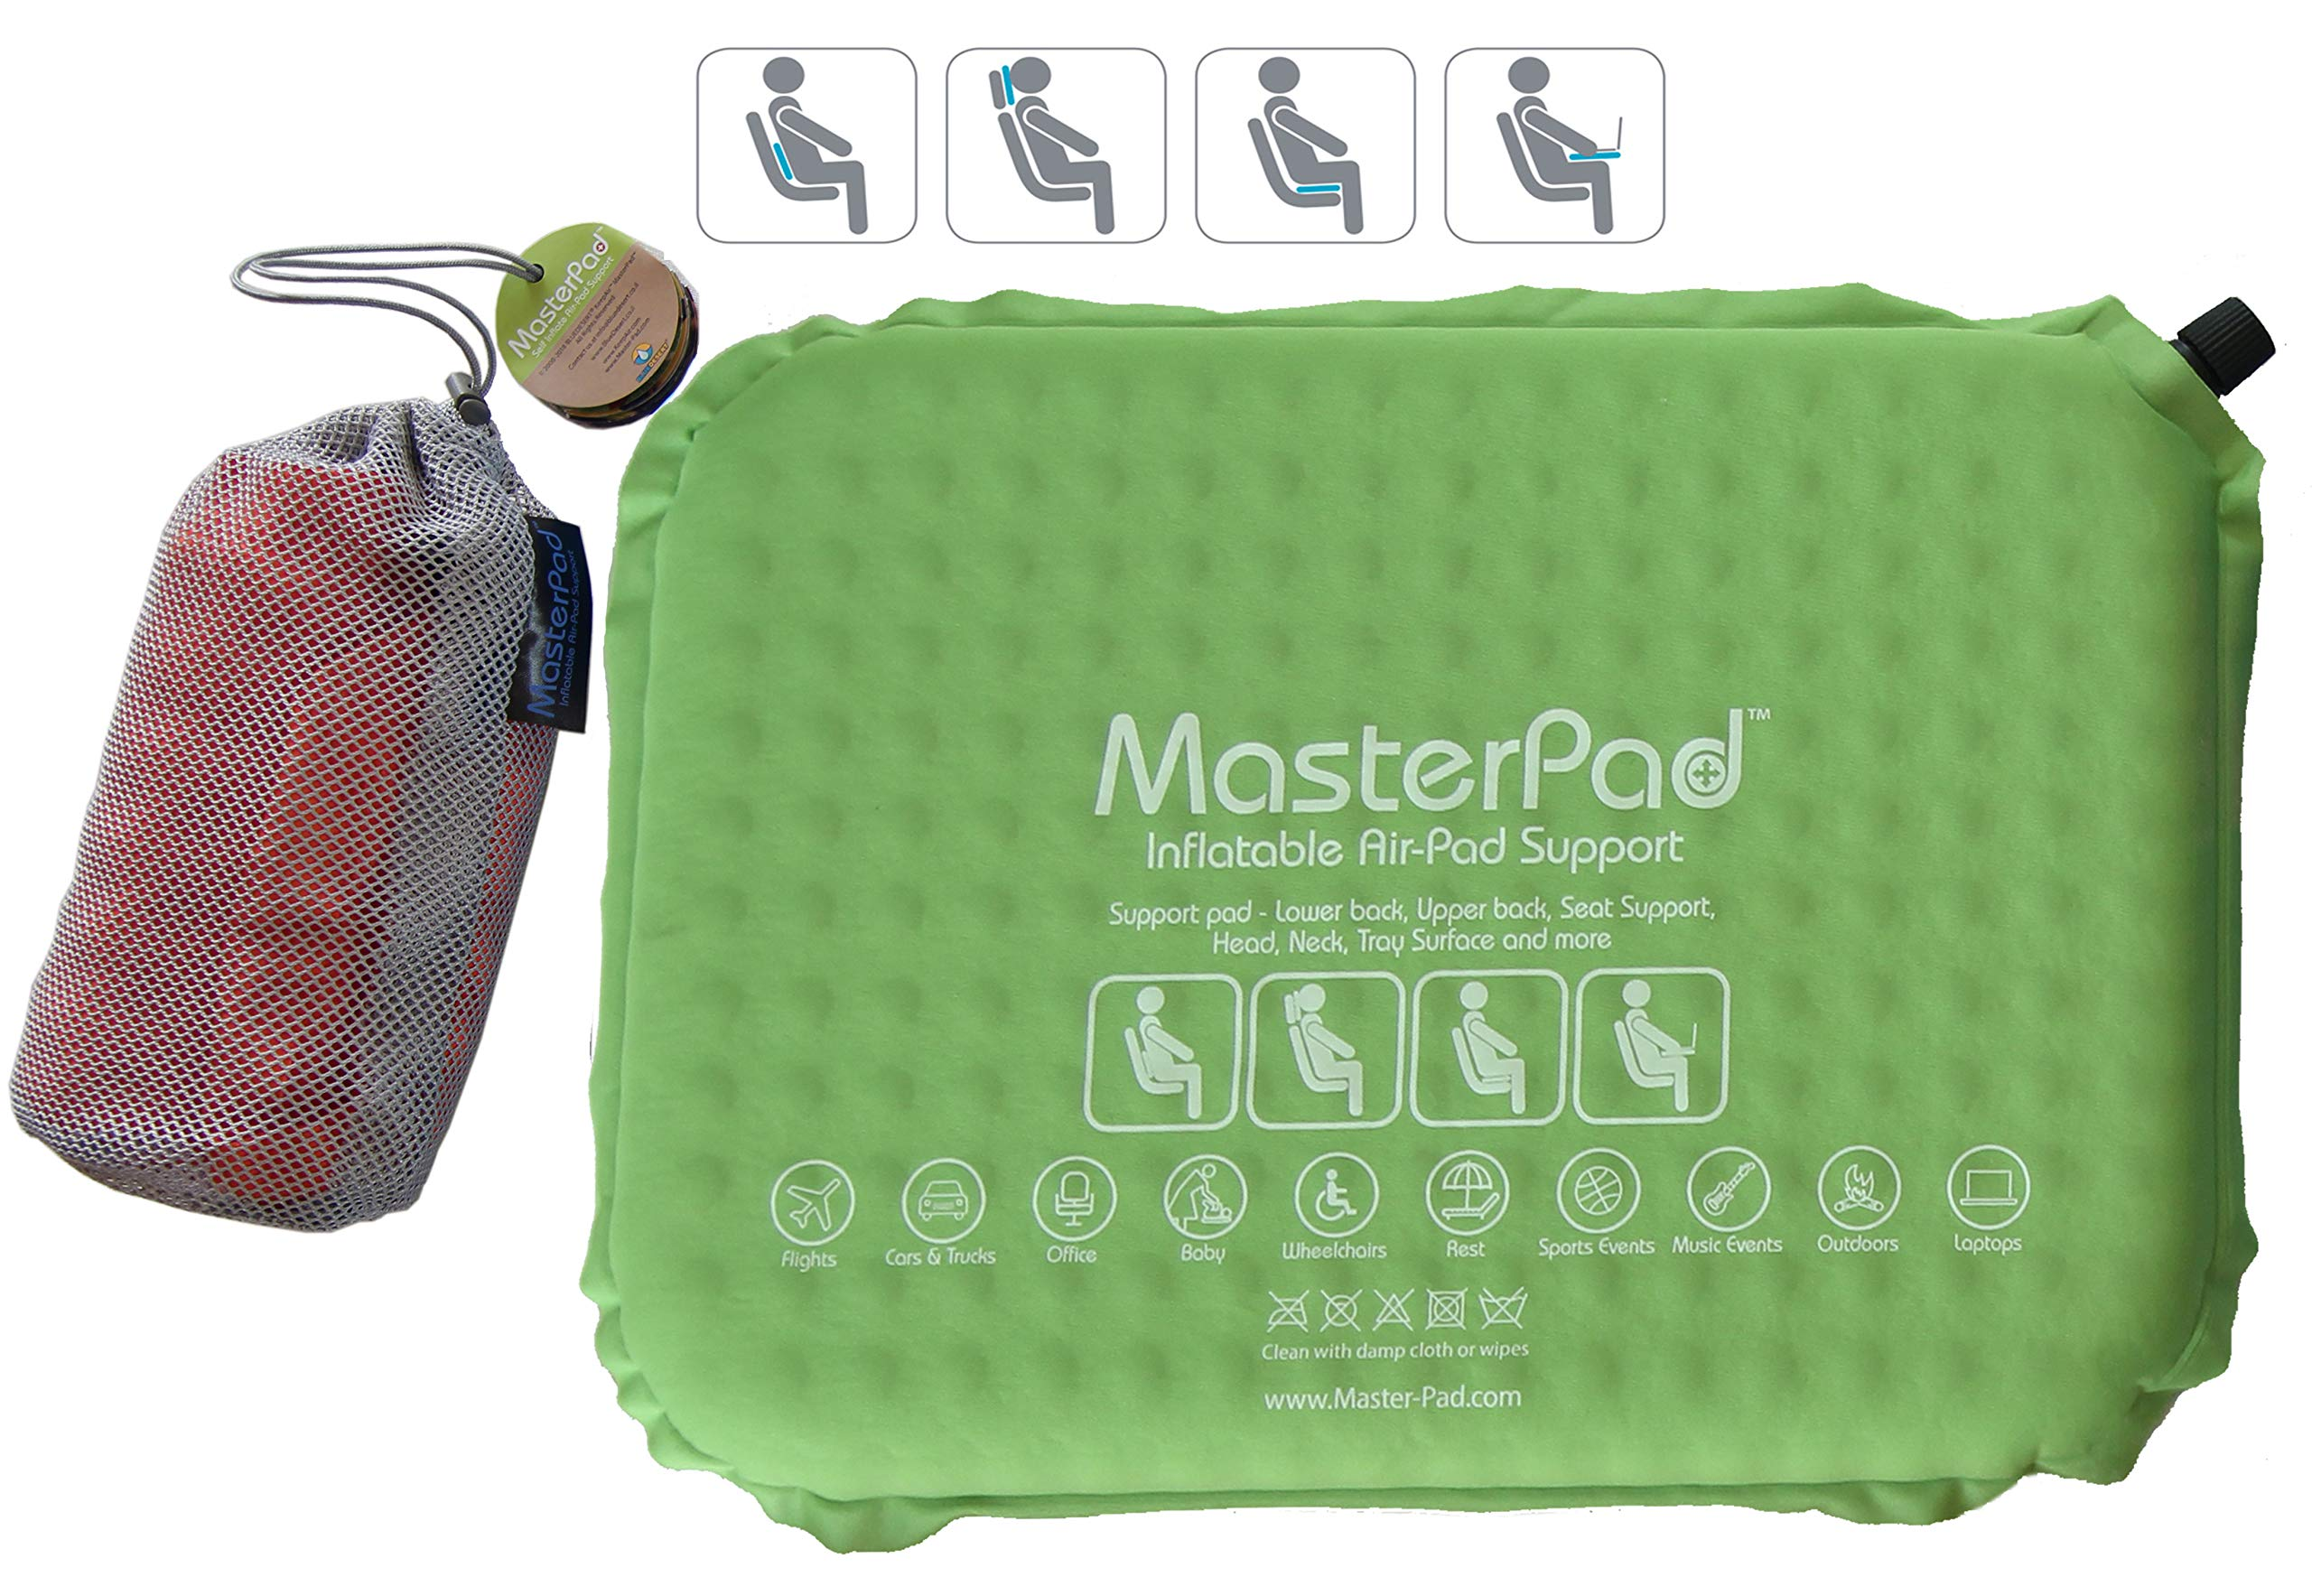 Master Pad Lumbar Support Self-Inflatable Pillow Travel, Home Office. This Back Relief - Cushion is Lightweight, Rolls up is Portable Easy Carrying. Padded. Cotton Feel. (Apple Green)